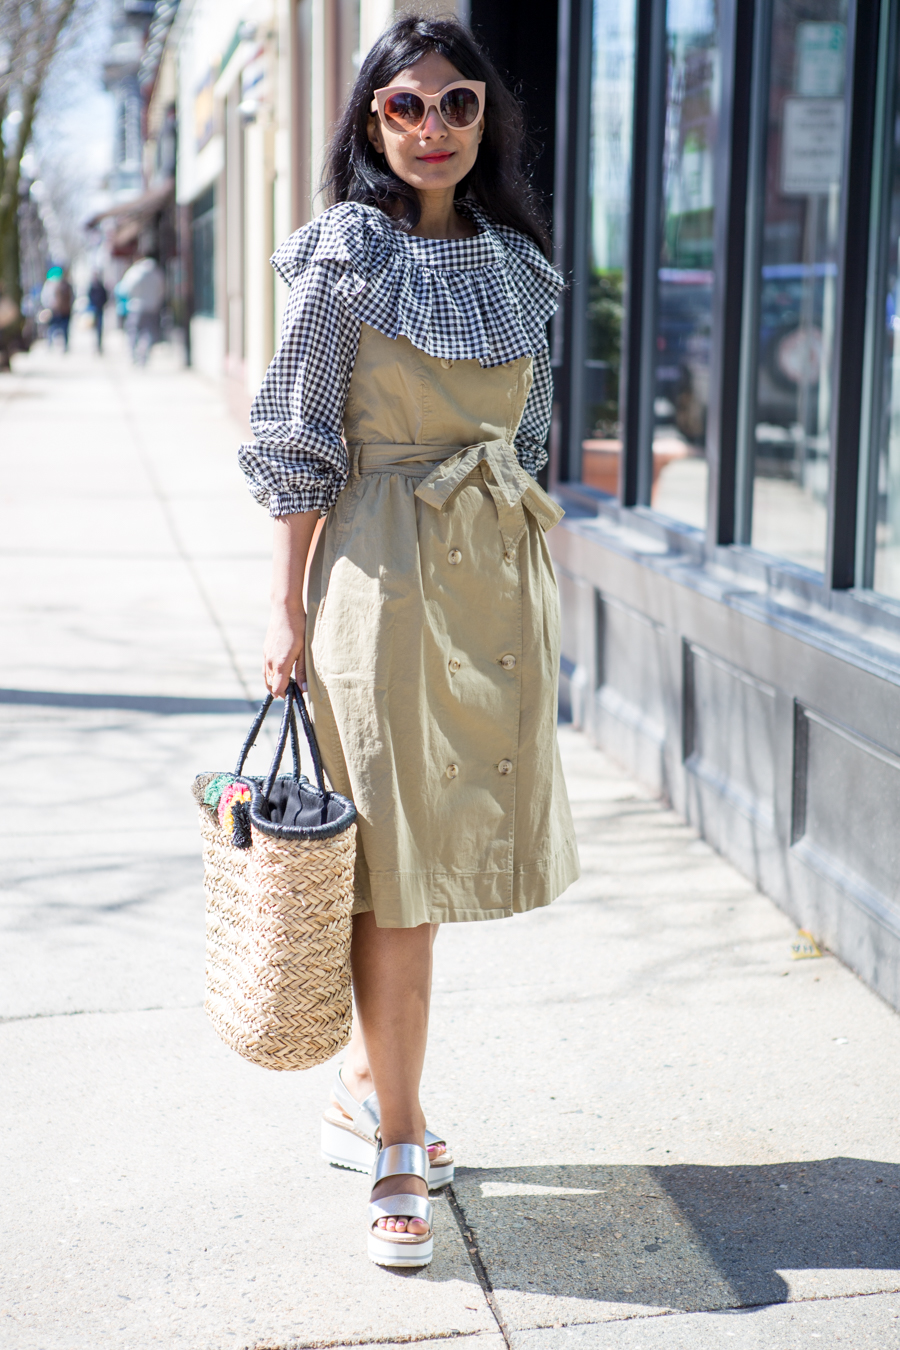 ruffles, trench dress, trendy, straw tote, pom poms, summer, spring fashion, petite style, feminine style, fashion forward, spring layers, beach tote, vacation wear, spring break, fashion over 40, j.crew